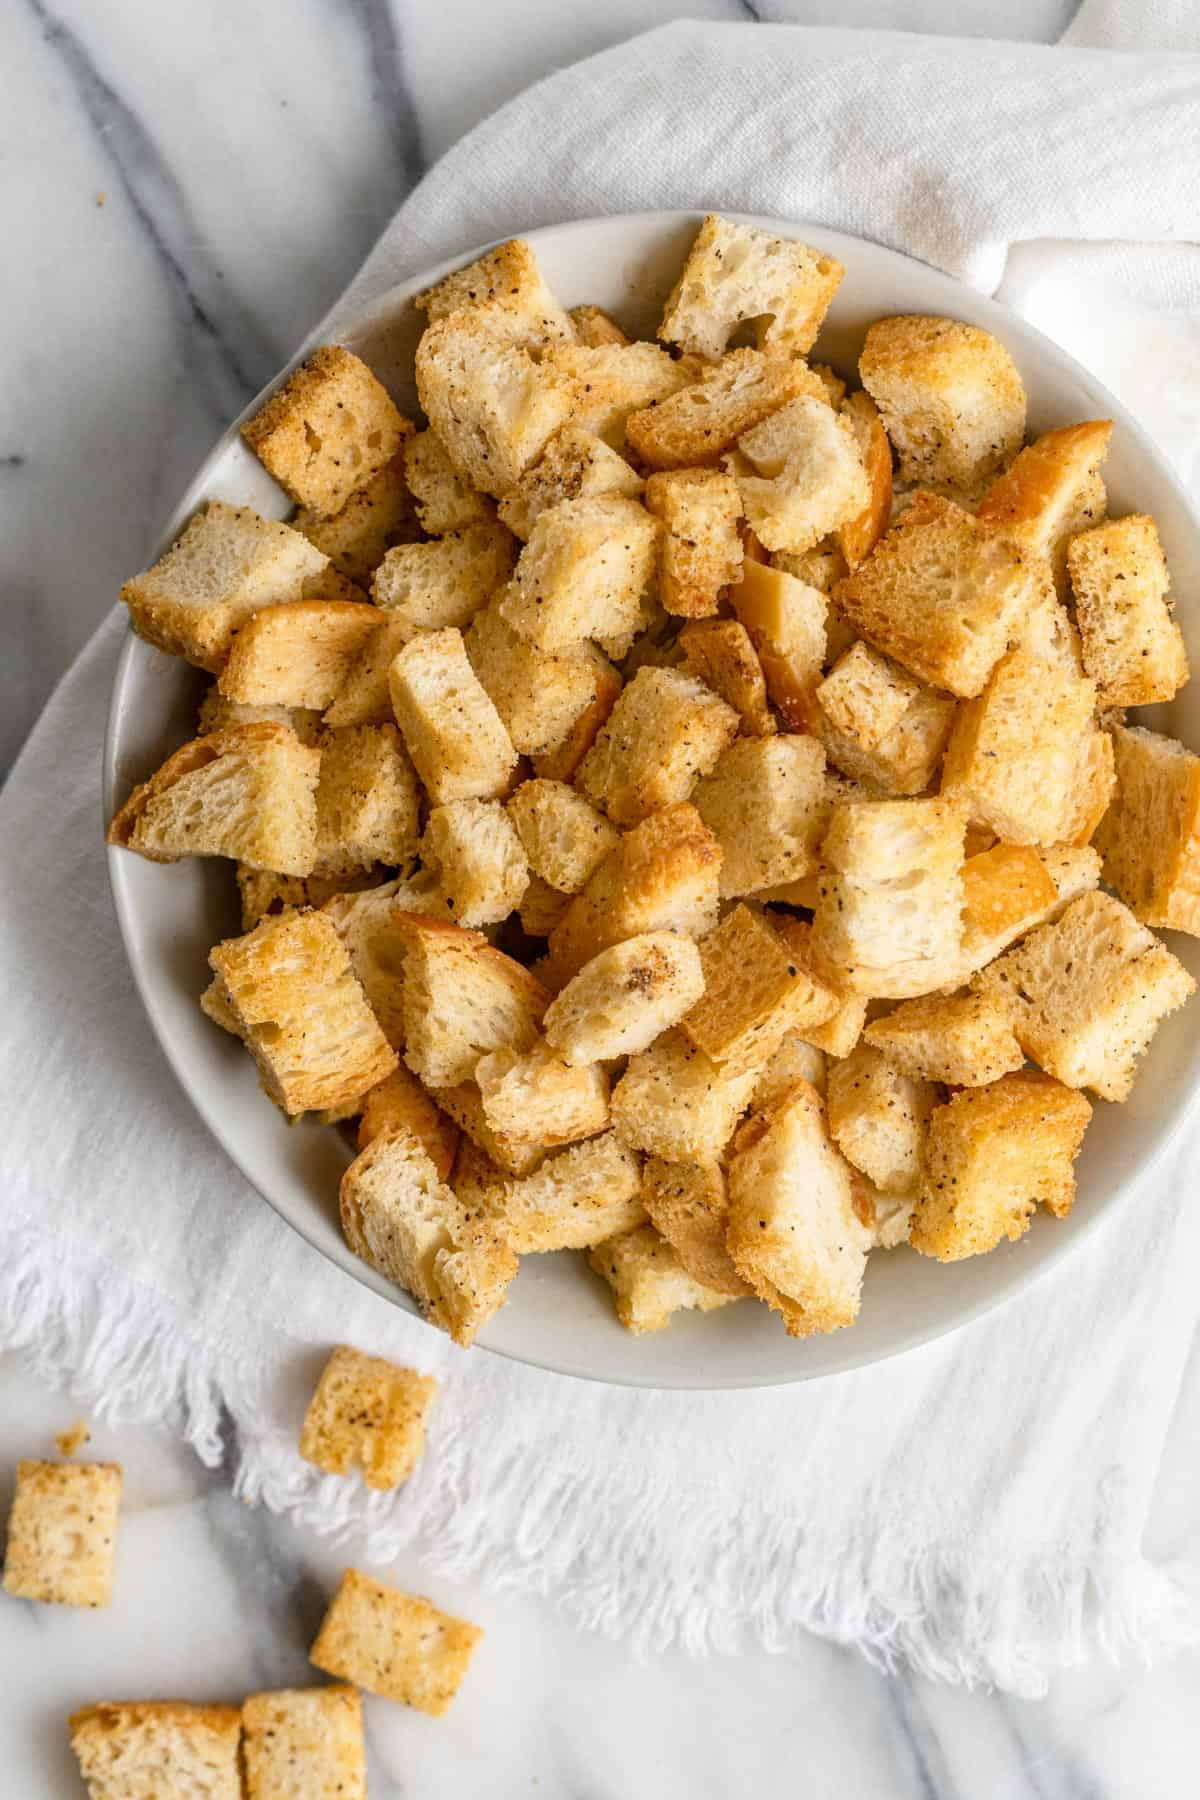 Homemade croutons in a large bowl with a couple fallen out